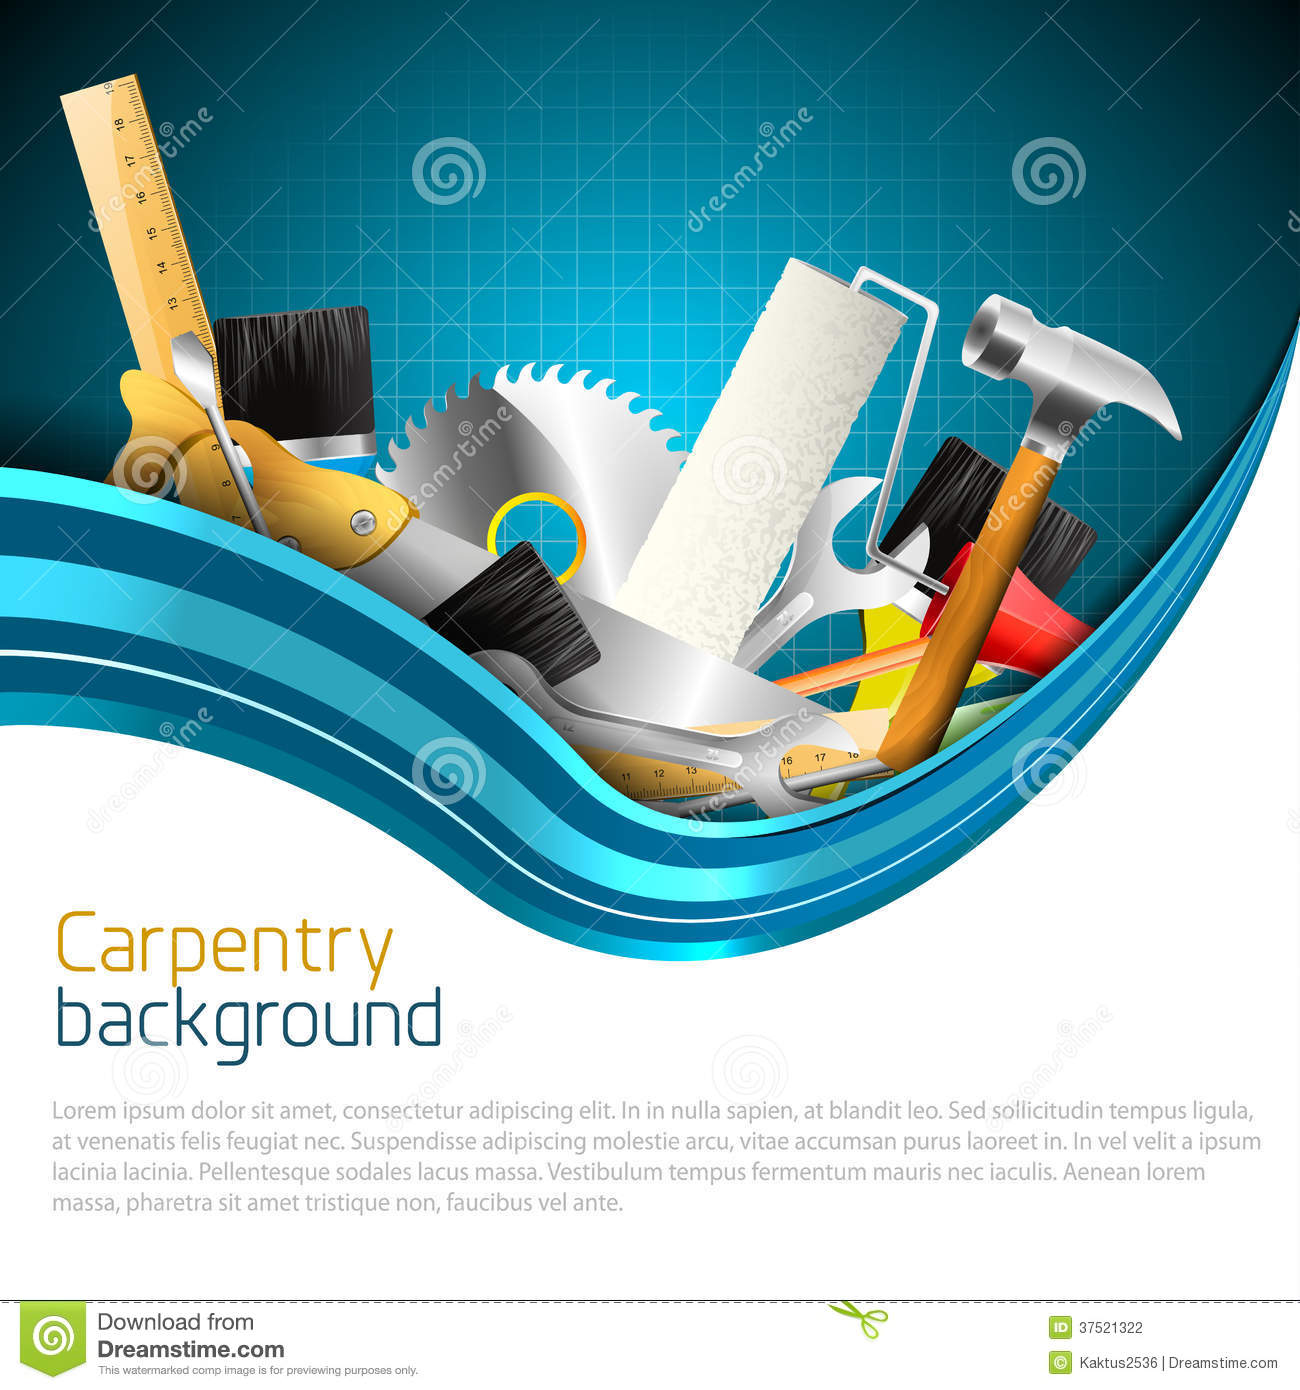 Carpentry background - photo#50